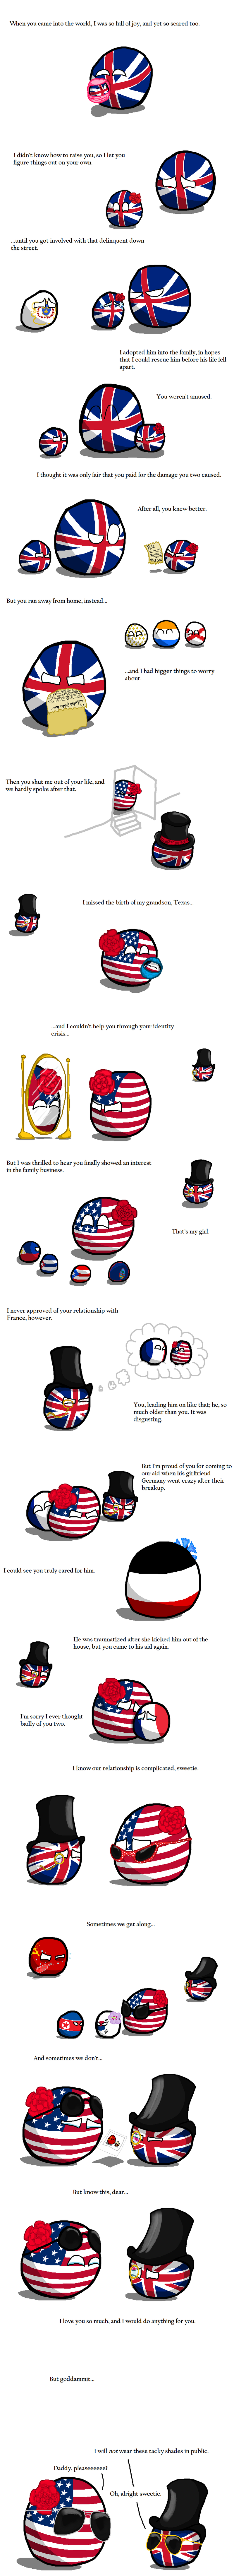 Daily Polandball: Holy shit, this one is long.